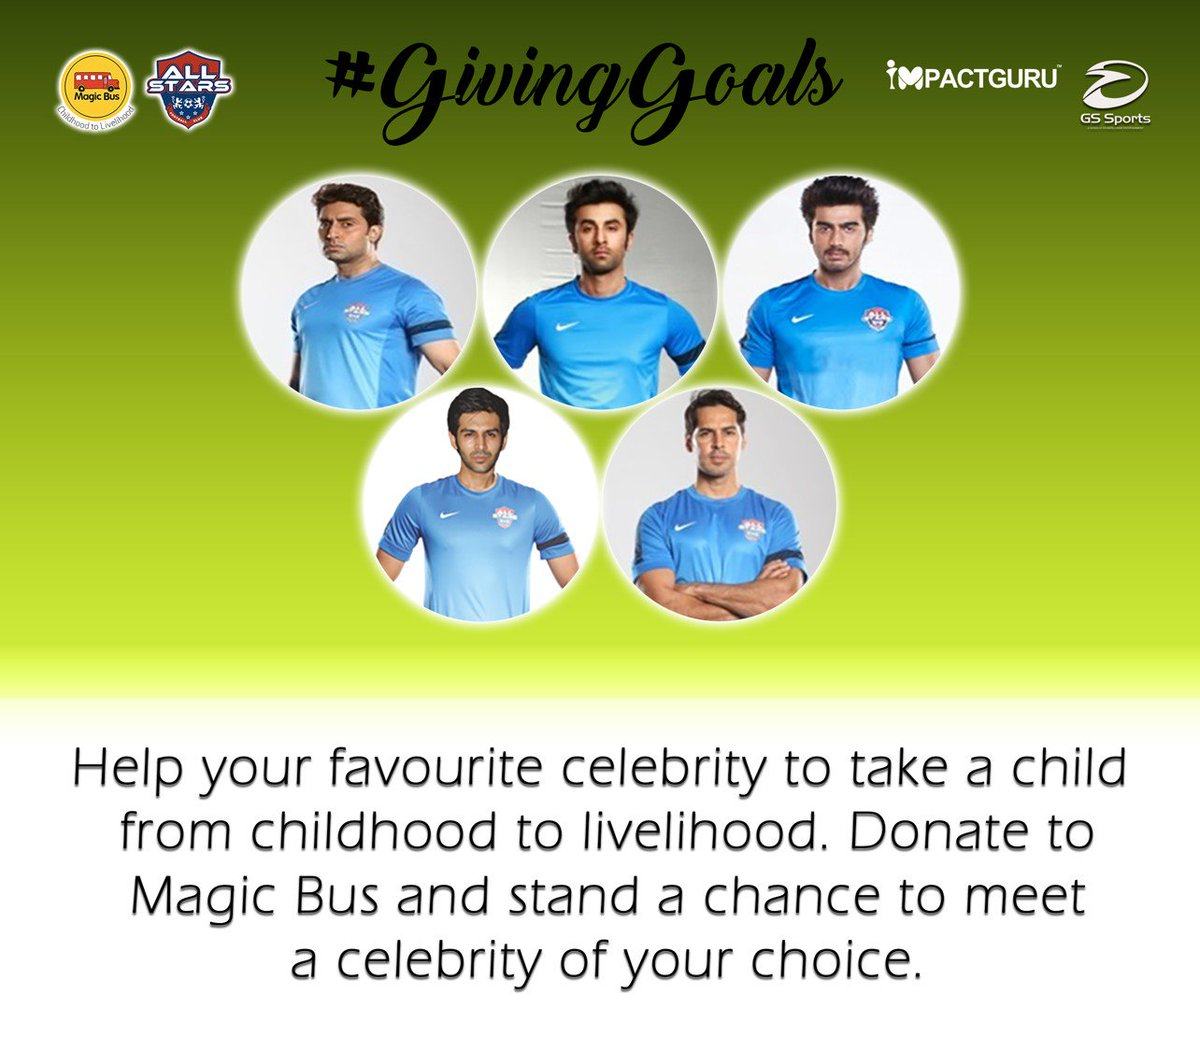 test Twitter Media - Get the opportunity to meet your favorite celebrity by being a part of the #GivingGoals campaign. Donate to Magic Bus.  https://t.co/fCAYT8OuyW  @AllstarsFC_PFH @ImpactGuru #magicbus #Football https://t.co/rEzq5c9Uhd